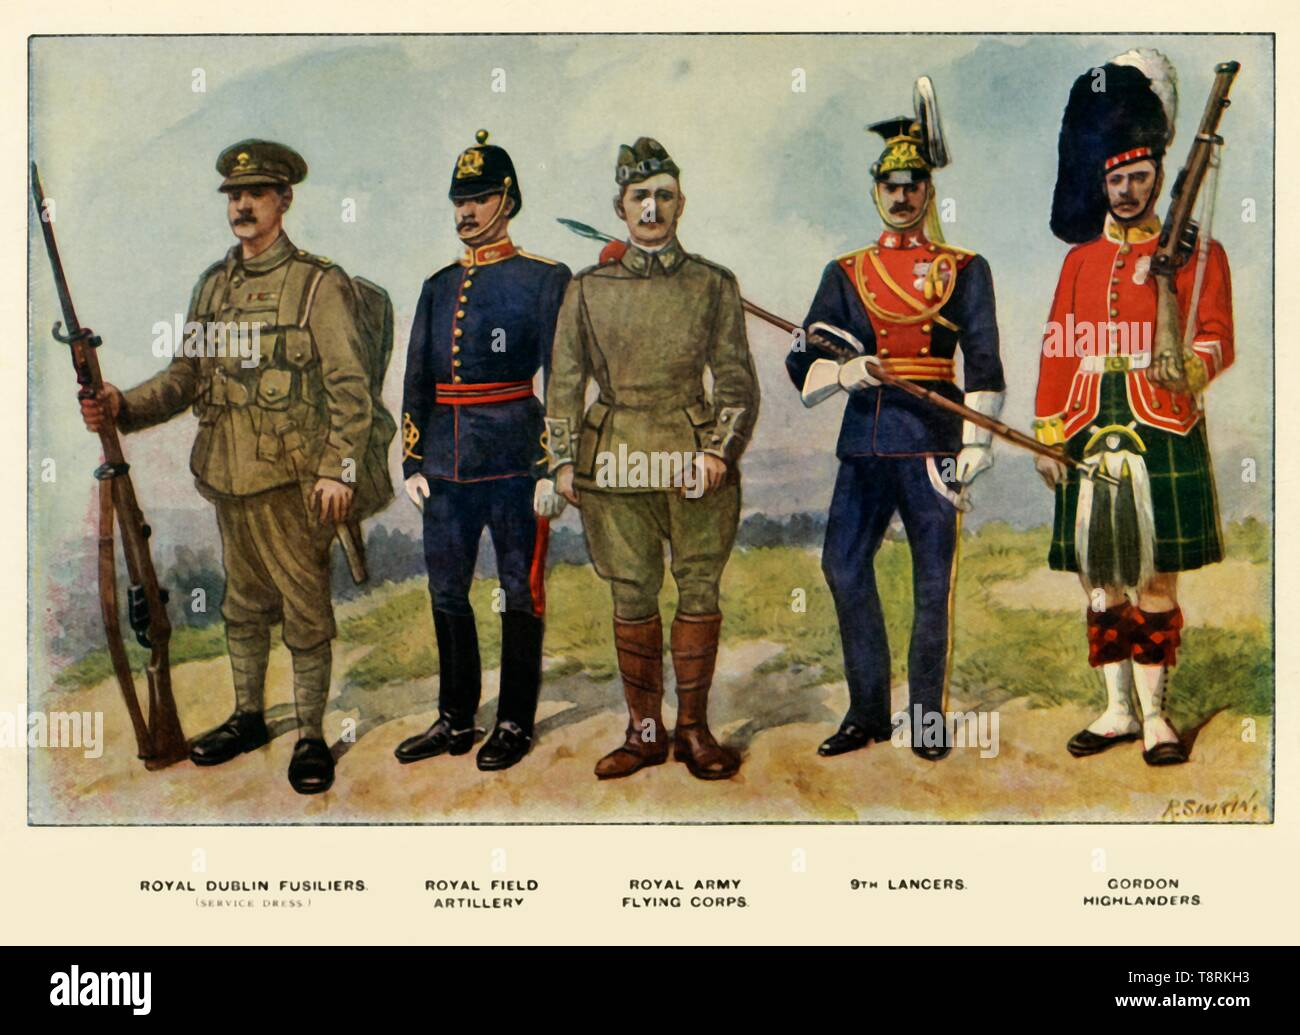 """'Types of the British Army', 1919. Soldiers serving in the First World War, 1914-1919: Royal Dublin Fusiliers (service dress); Royal Field Artillery; Royal Army Flying Corps; 9th Lancers; Gordon Highlanders. From """"The History of the Great European War: its causes and effects"""", Vol. II, by W. Stanley Macbean Knight. [Caxton Pulishing Company, Limited, London, 1919] - Stock Image"""